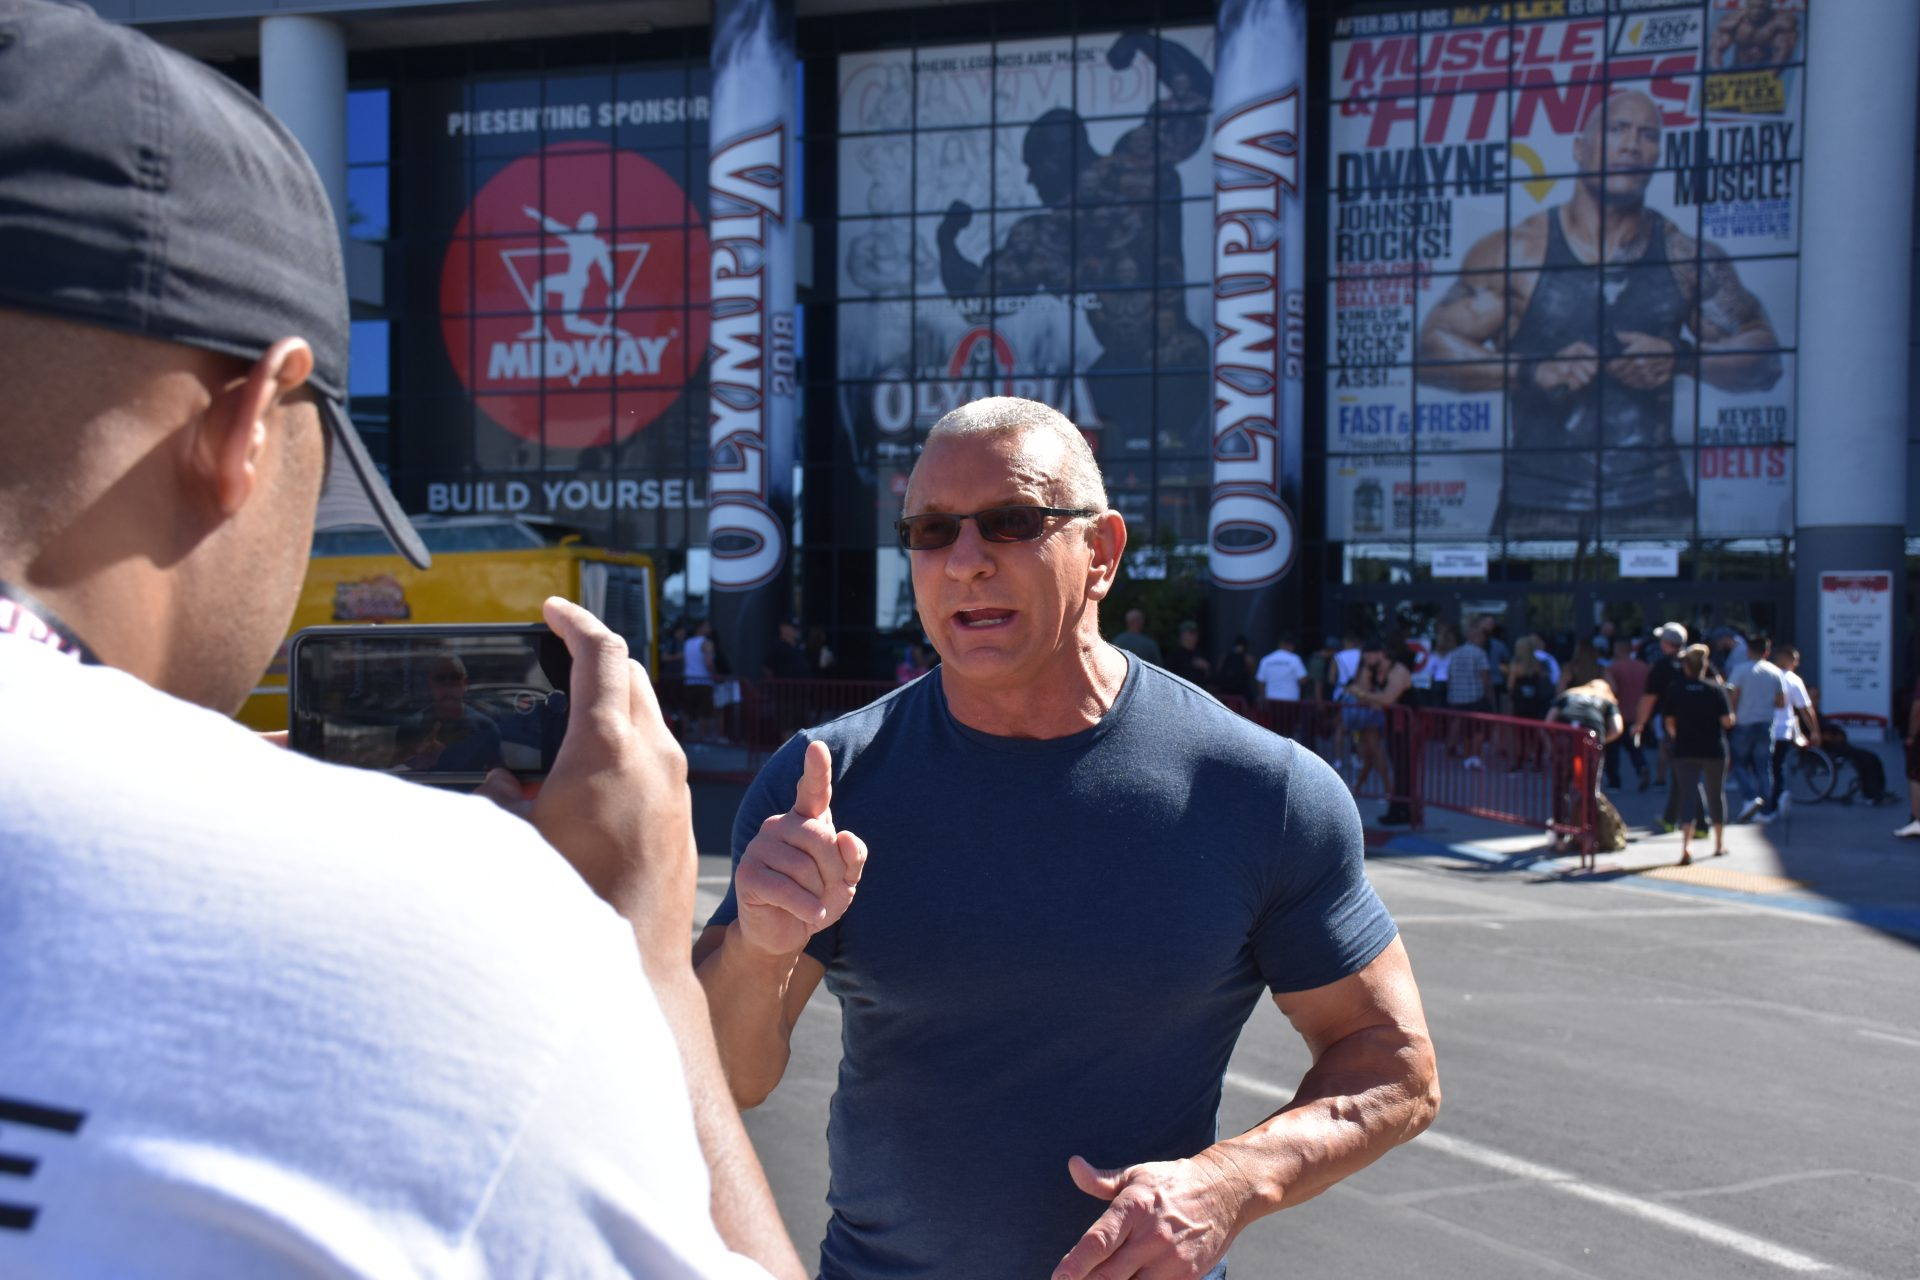 A Day in the Life of Robert Irvine